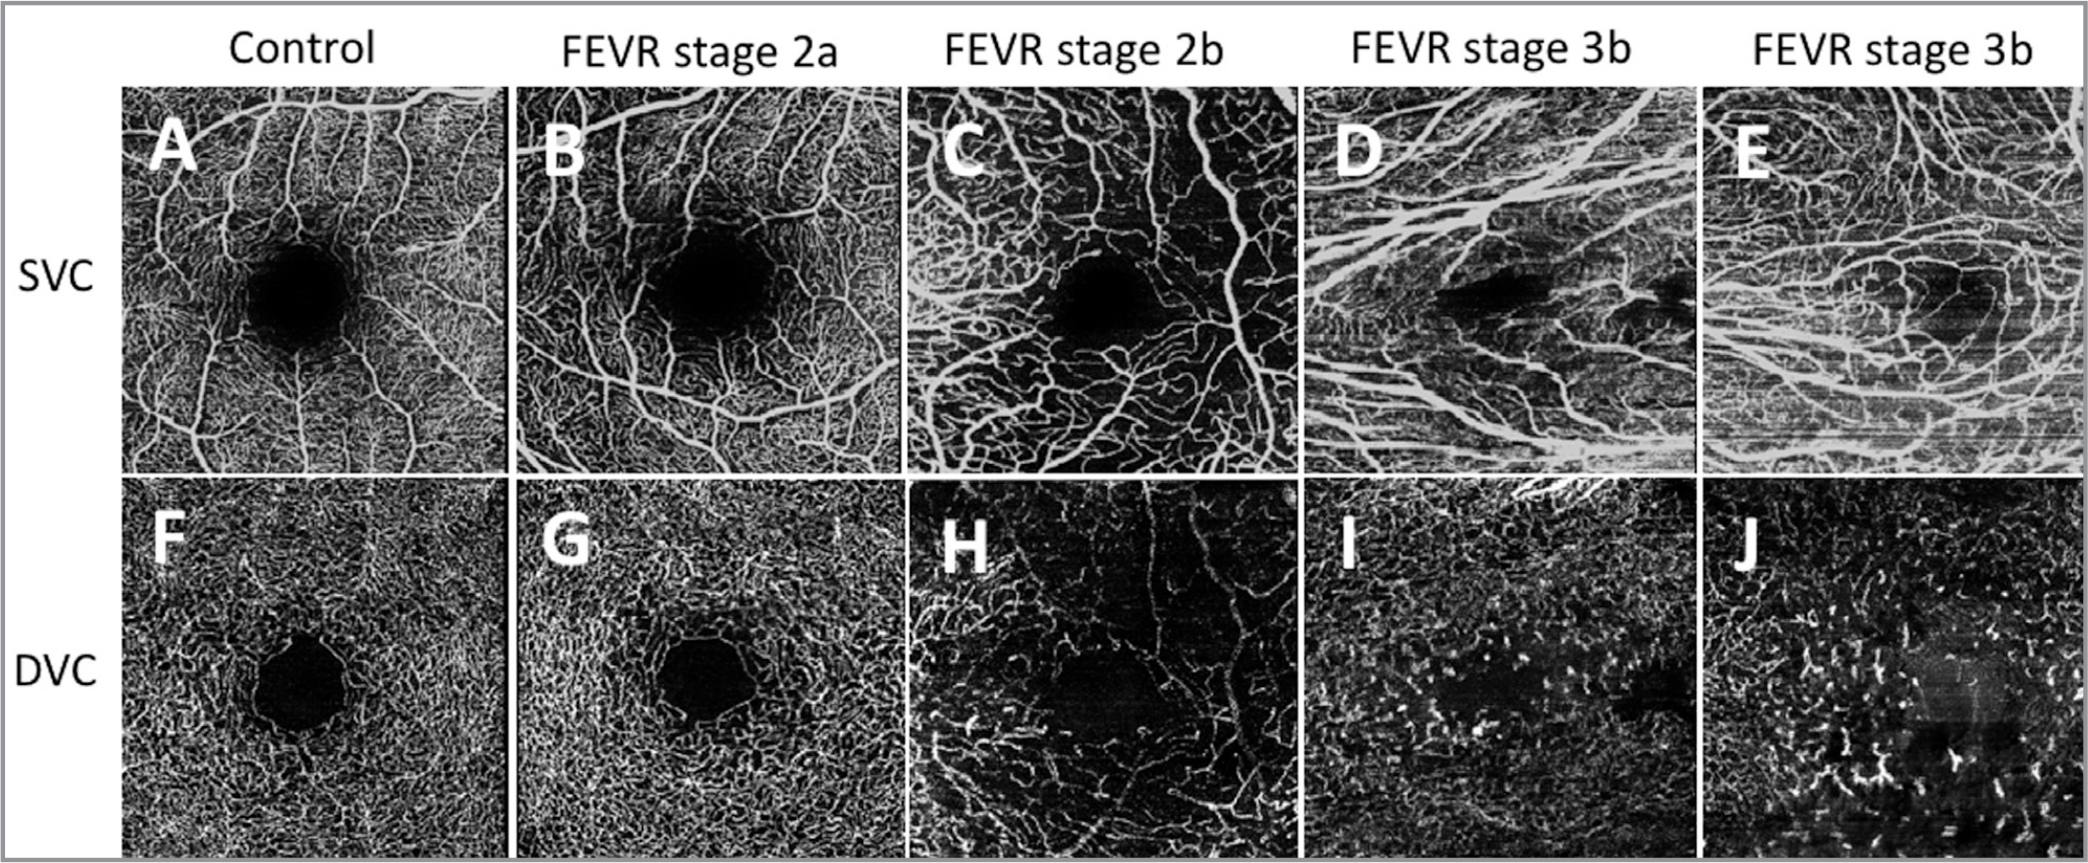 """Optical coherence tomography angiography showing the superficial vascular complex (SVC) (top row, A–E) and corresponding deep vascular complex (DVC) (bottom row, F–J) for a 16-year-old healthy control (A, F), a 22-year-old patient with familial exudative vitreoretinopathy (FEVR) stage 2a in the right eye (B, G), a 2-year-old with FEVR stage 2b in the left eye (C, H), a 16-year-old with FEVR stage 3b in the right eye (D, I), and a 21-year-old with FEVR stage 3b in the left eye (E, J). The SVC images show vessel dilation (C–E), disorganization (C–E), straightening (D, E), areas of increased and/or decreased density (C–E), and curls and loops (C, E). The DVC images show areas of decreased density (H–J), disorganization (H–J), and """"end bulbs,"""" or stub-like vessel terminations (H–J)."""